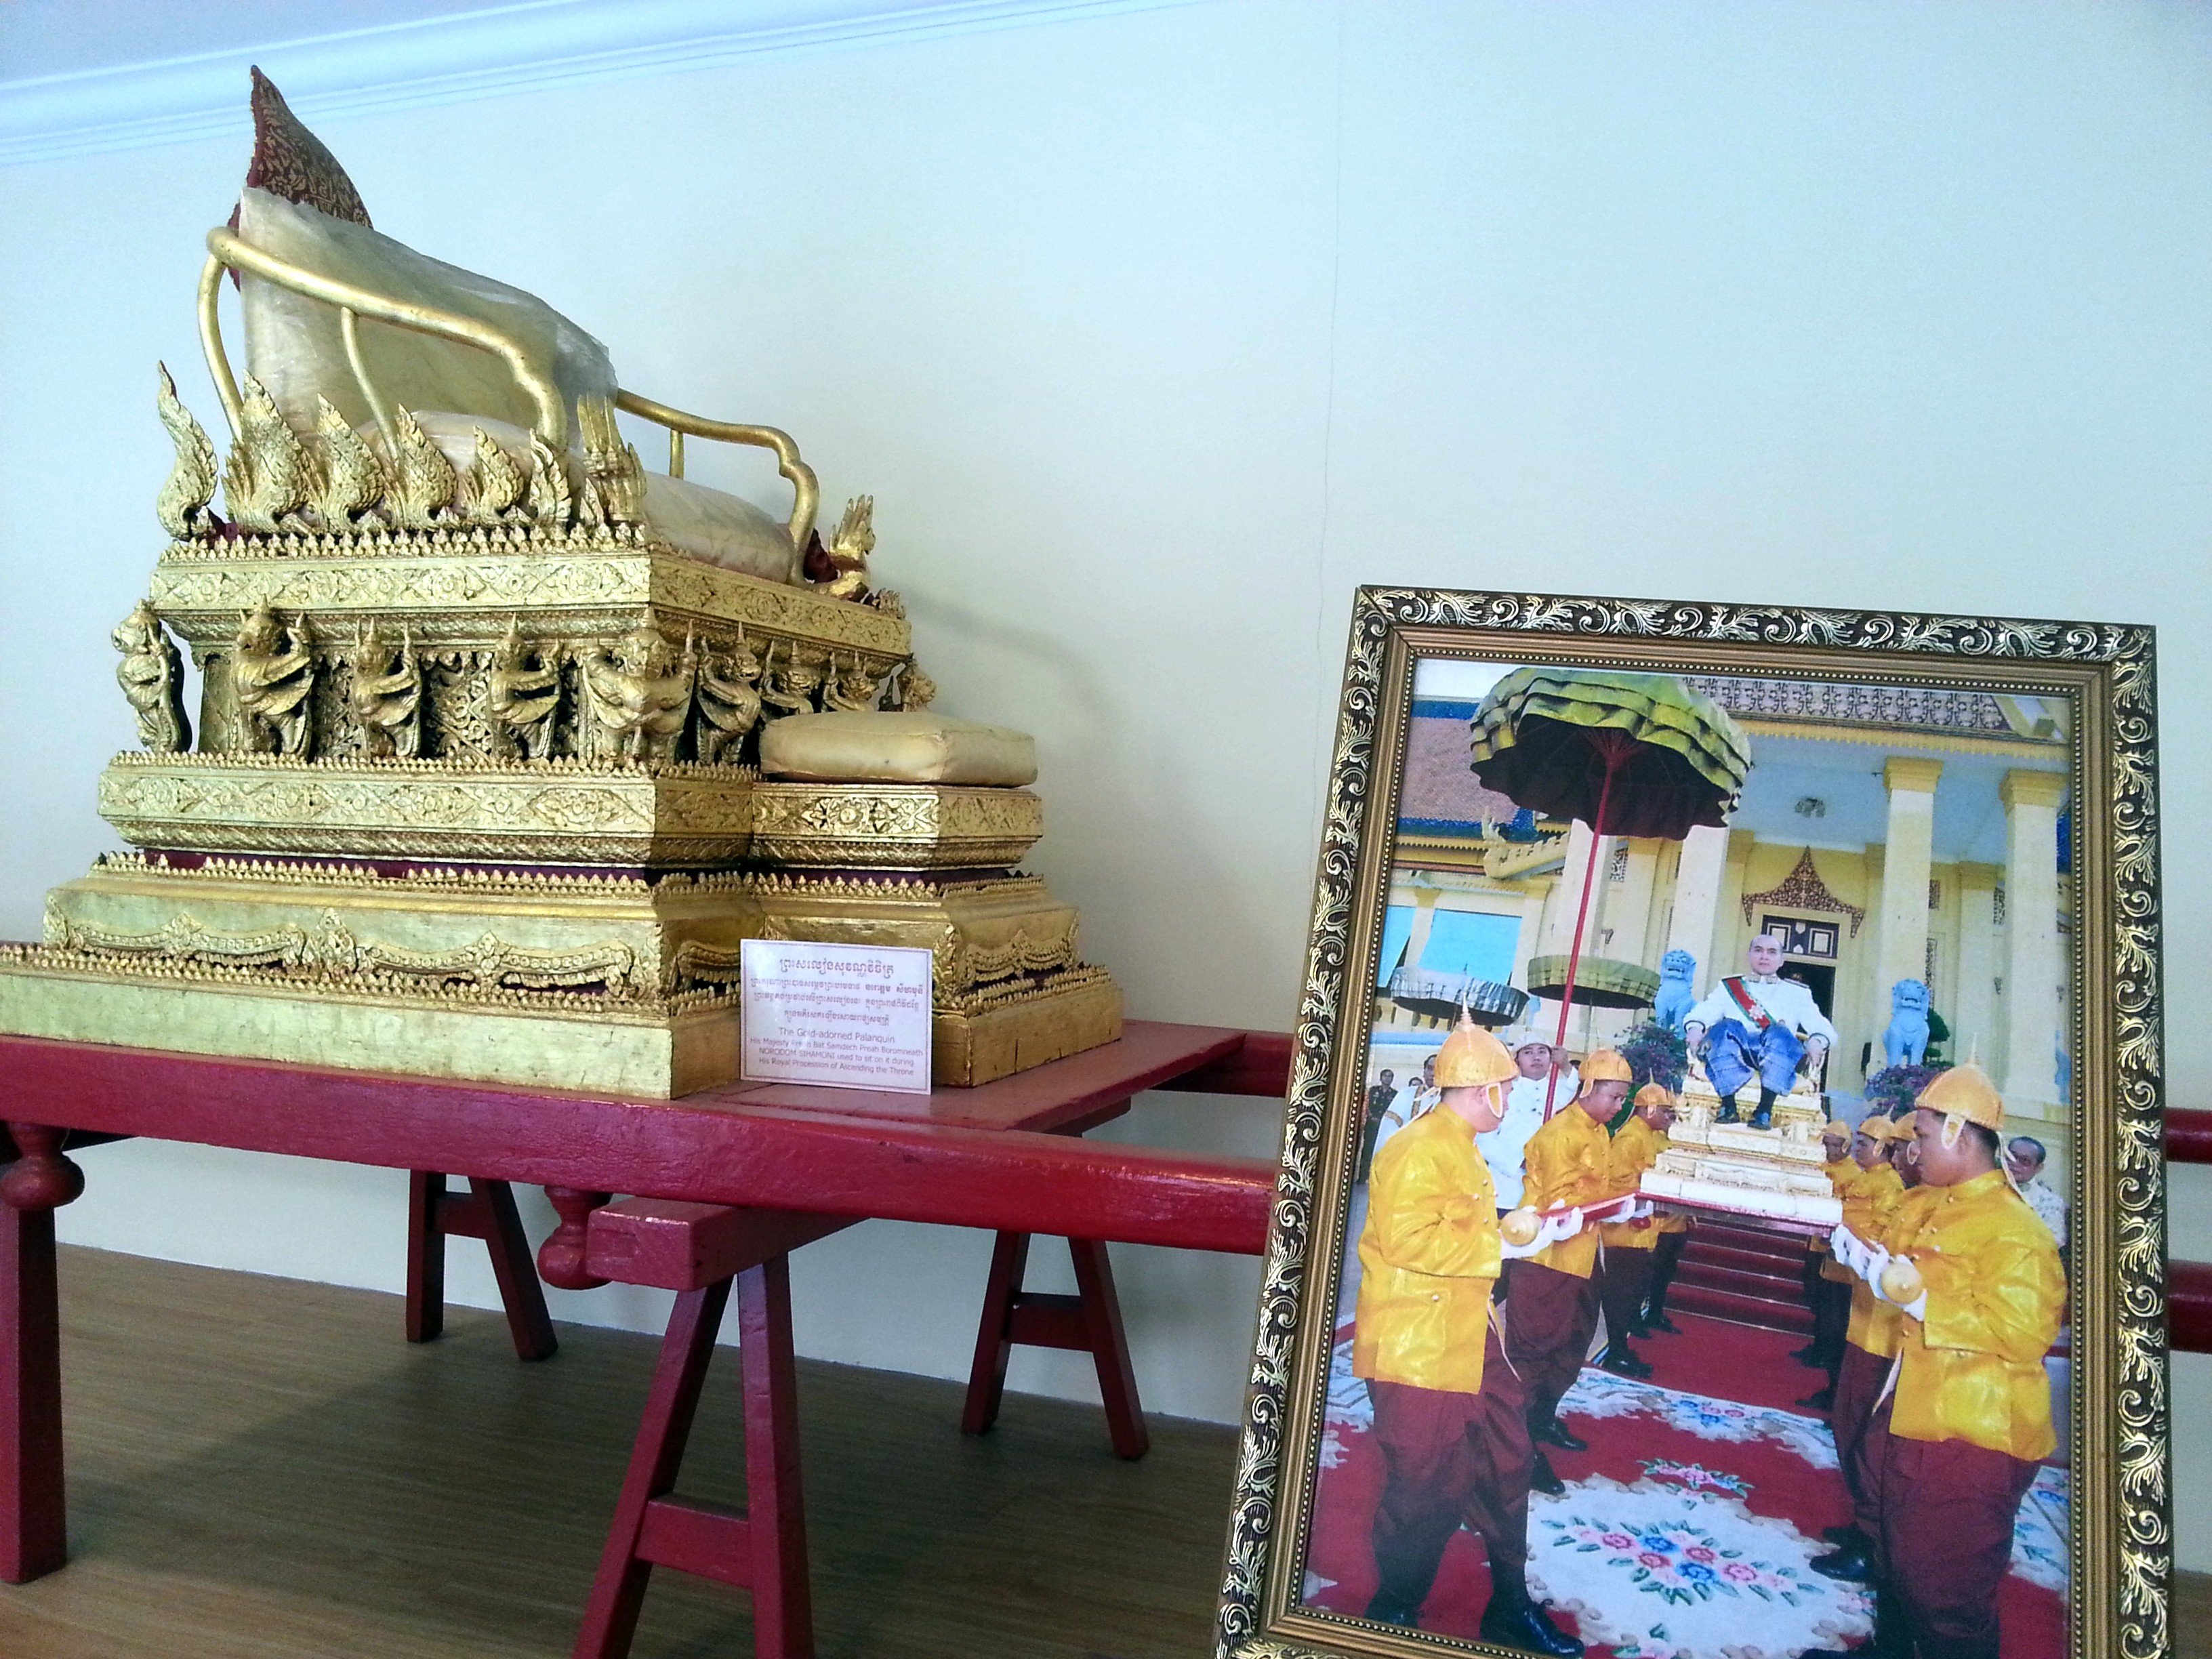 The Golden palanquin used by King Norodom